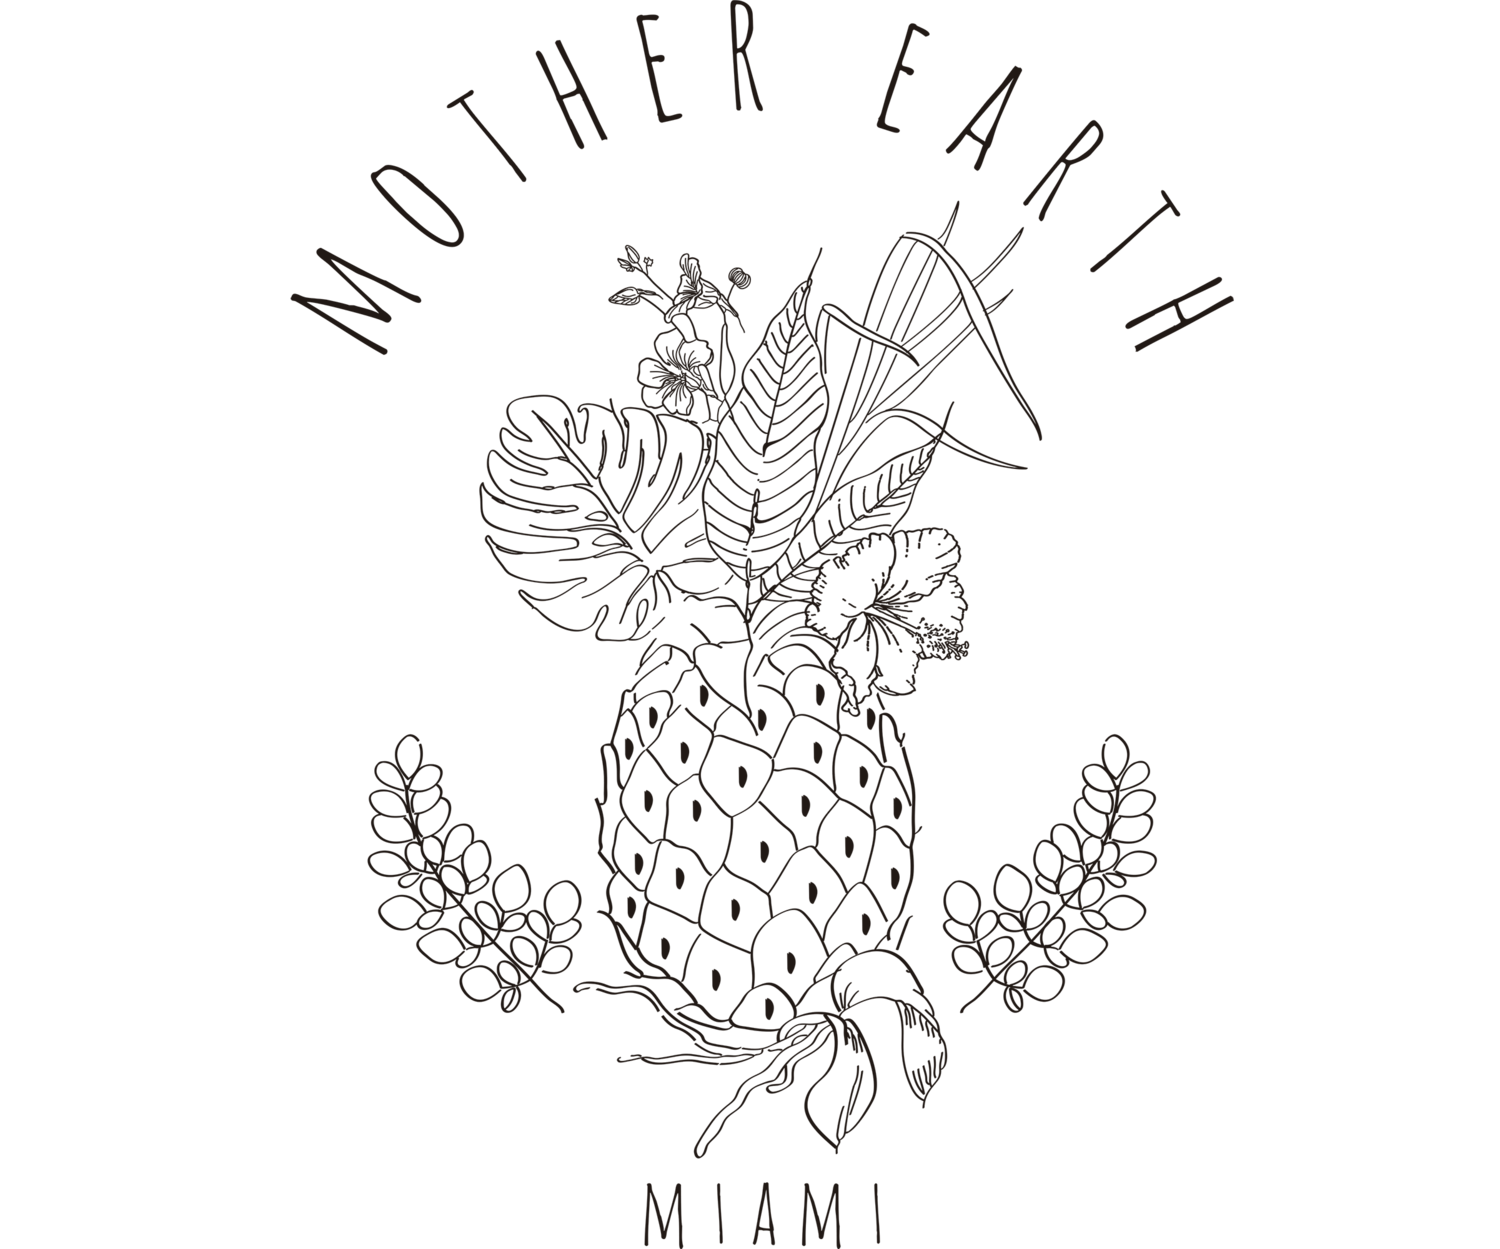 MOTHER EARTH MIAMI